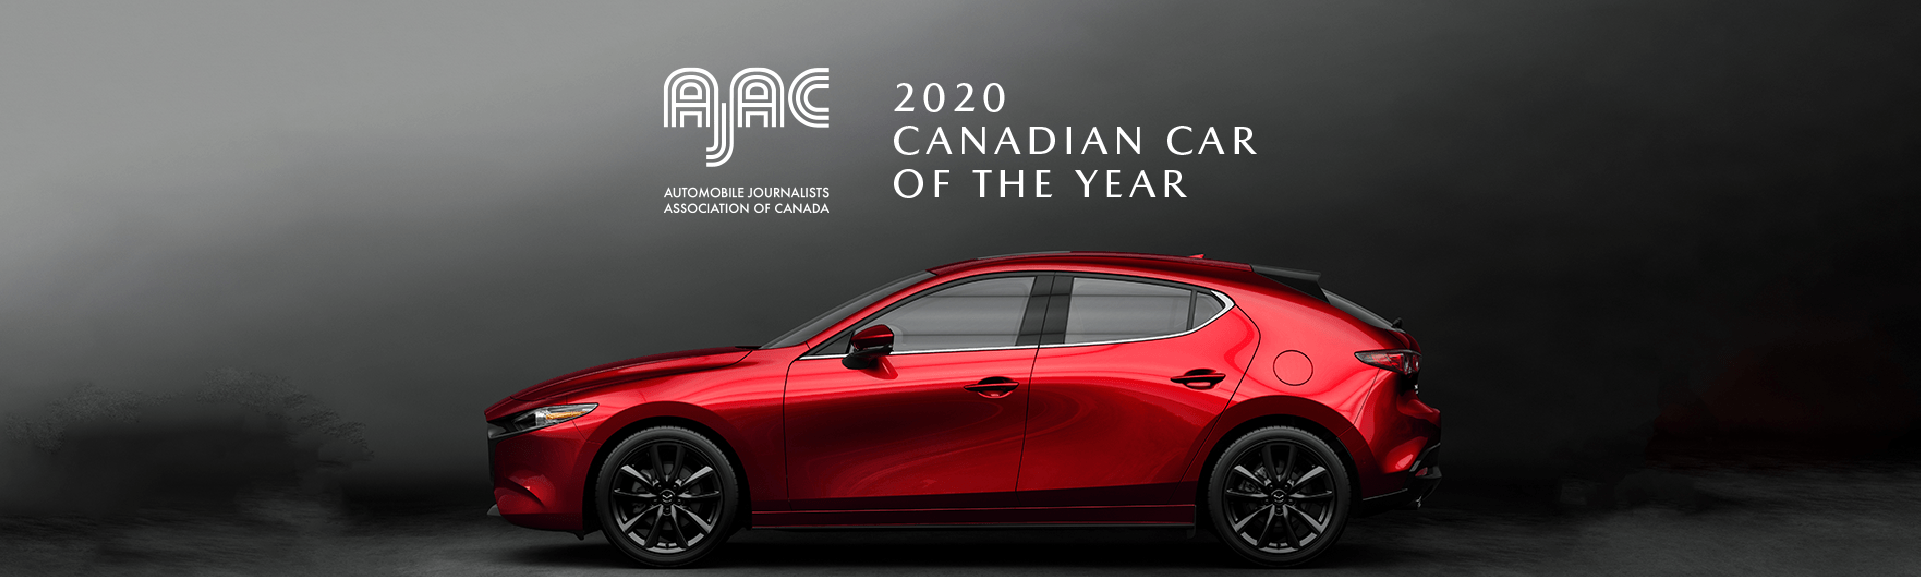 2020 Canadian Car of the Year